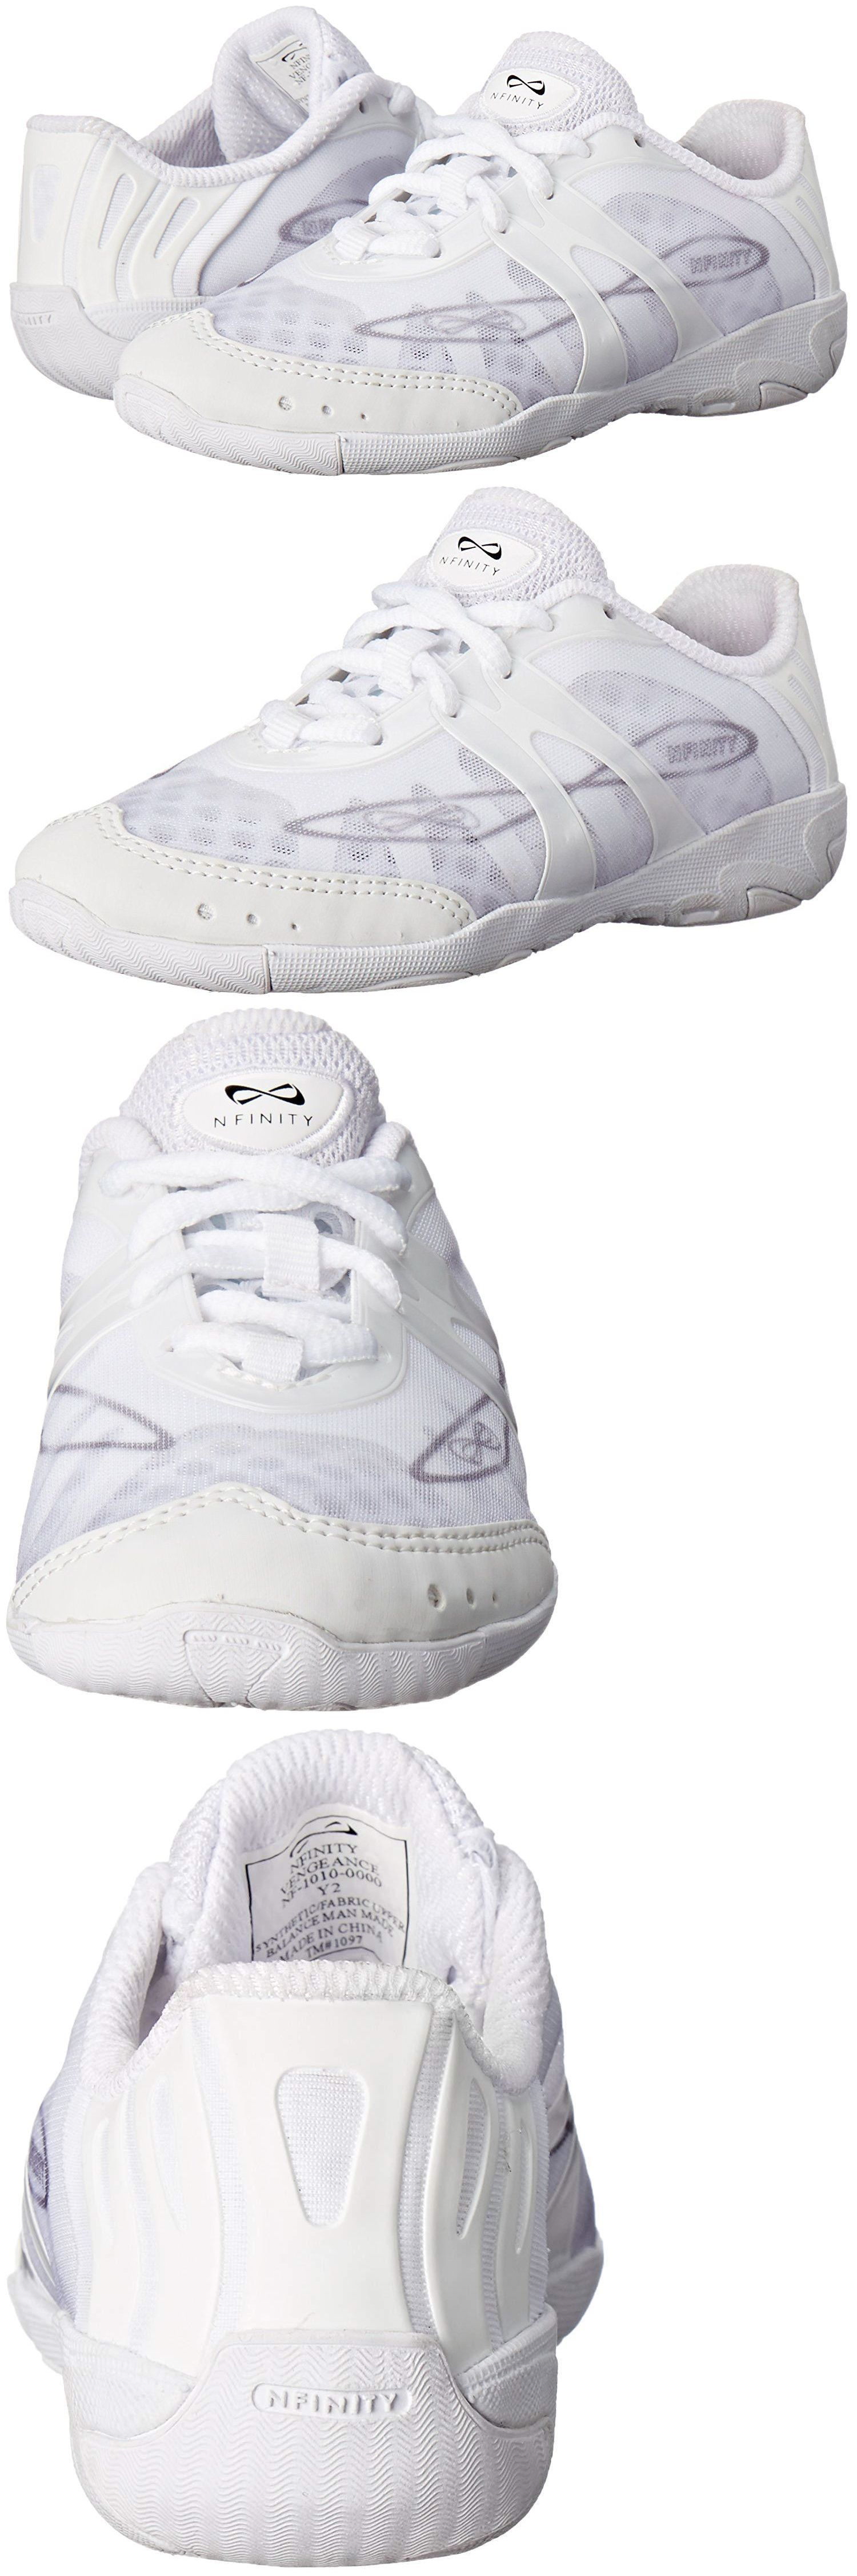 cecaa3373a Cheerleading 66832  Nfinity Vengeance Cheer Shoe (Youth And Adult Sizes) -   BUY IT NOW ONLY   100 on eBay!